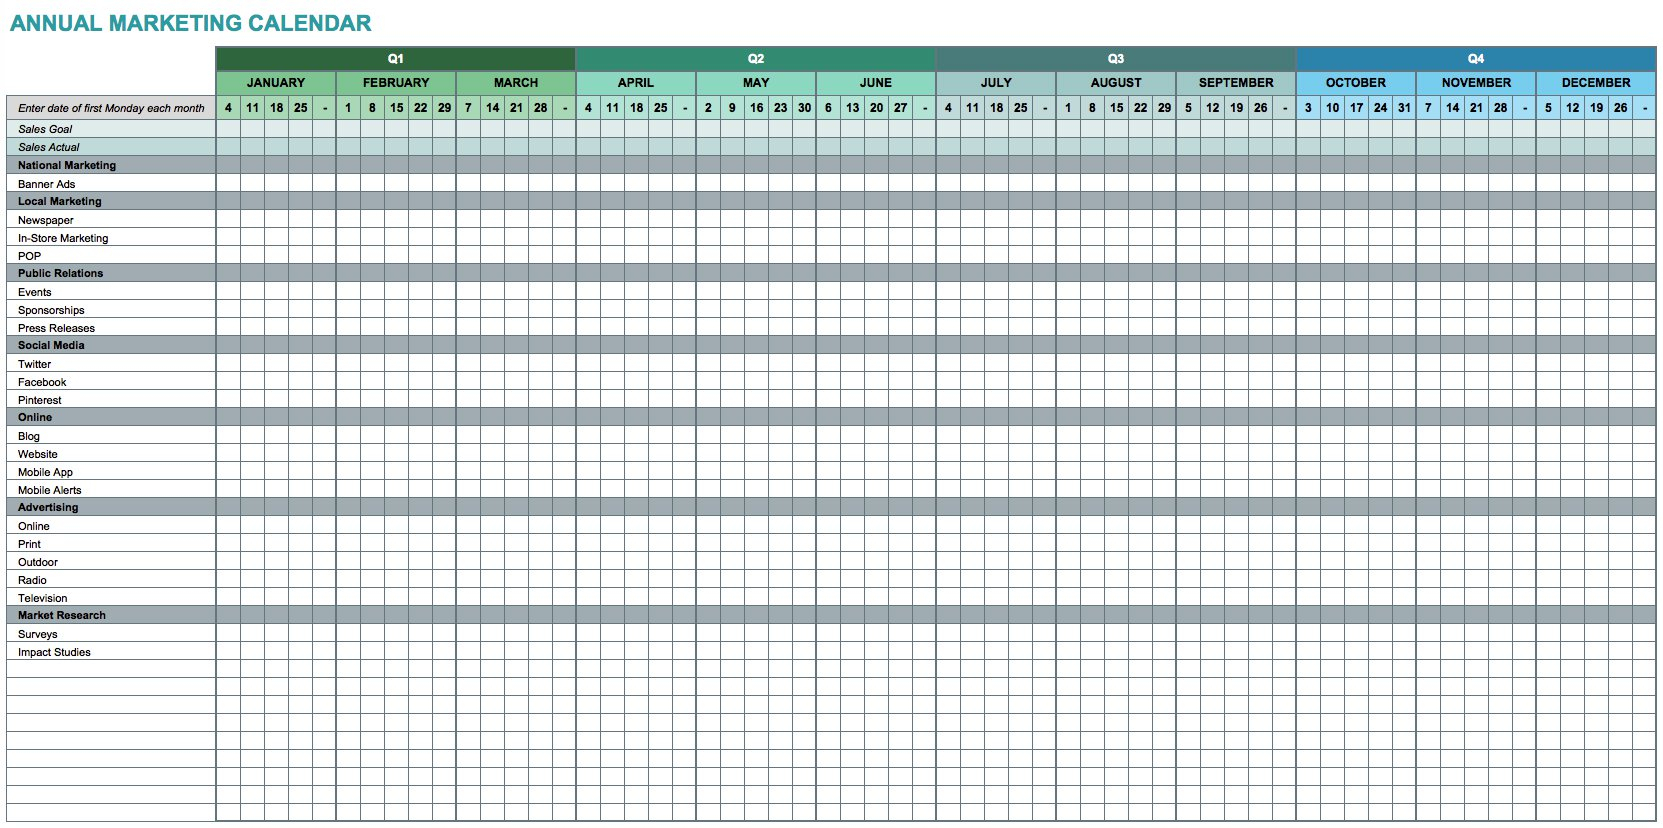 9 Free Marketing Calendar Templates For Excel - Smartsheet pertaining to Yearly Event Calendar Template Excel